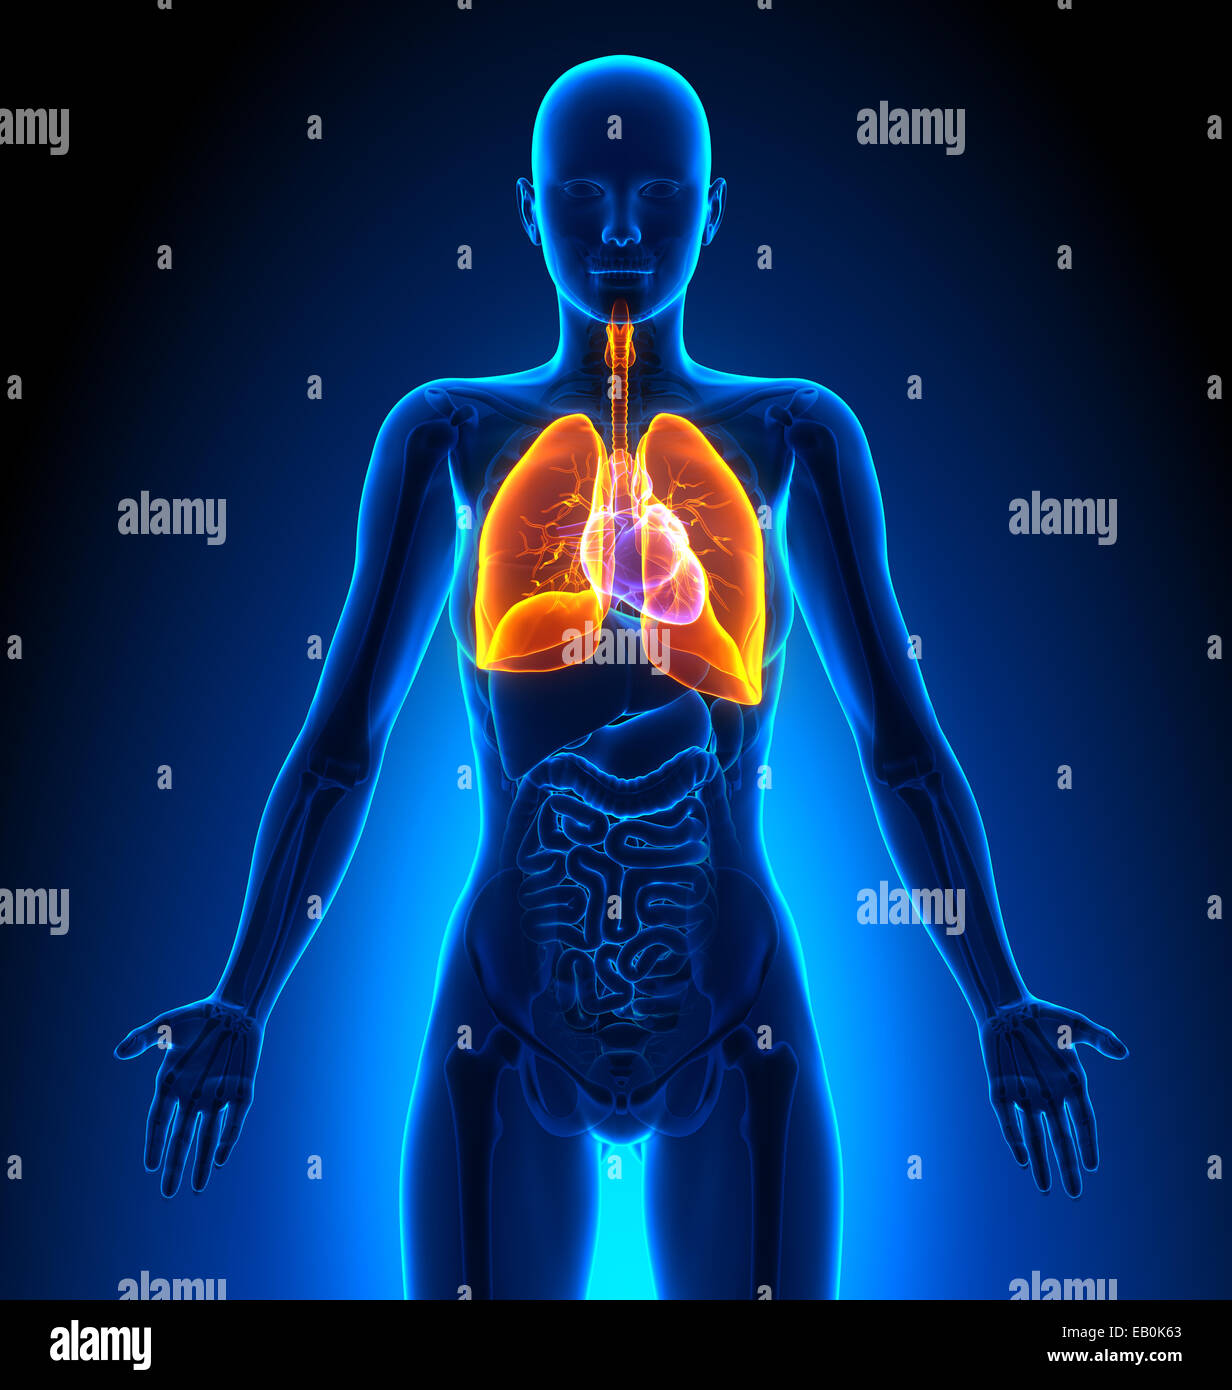 Lungs - Female Organs - Human Anatomy - Stock Image